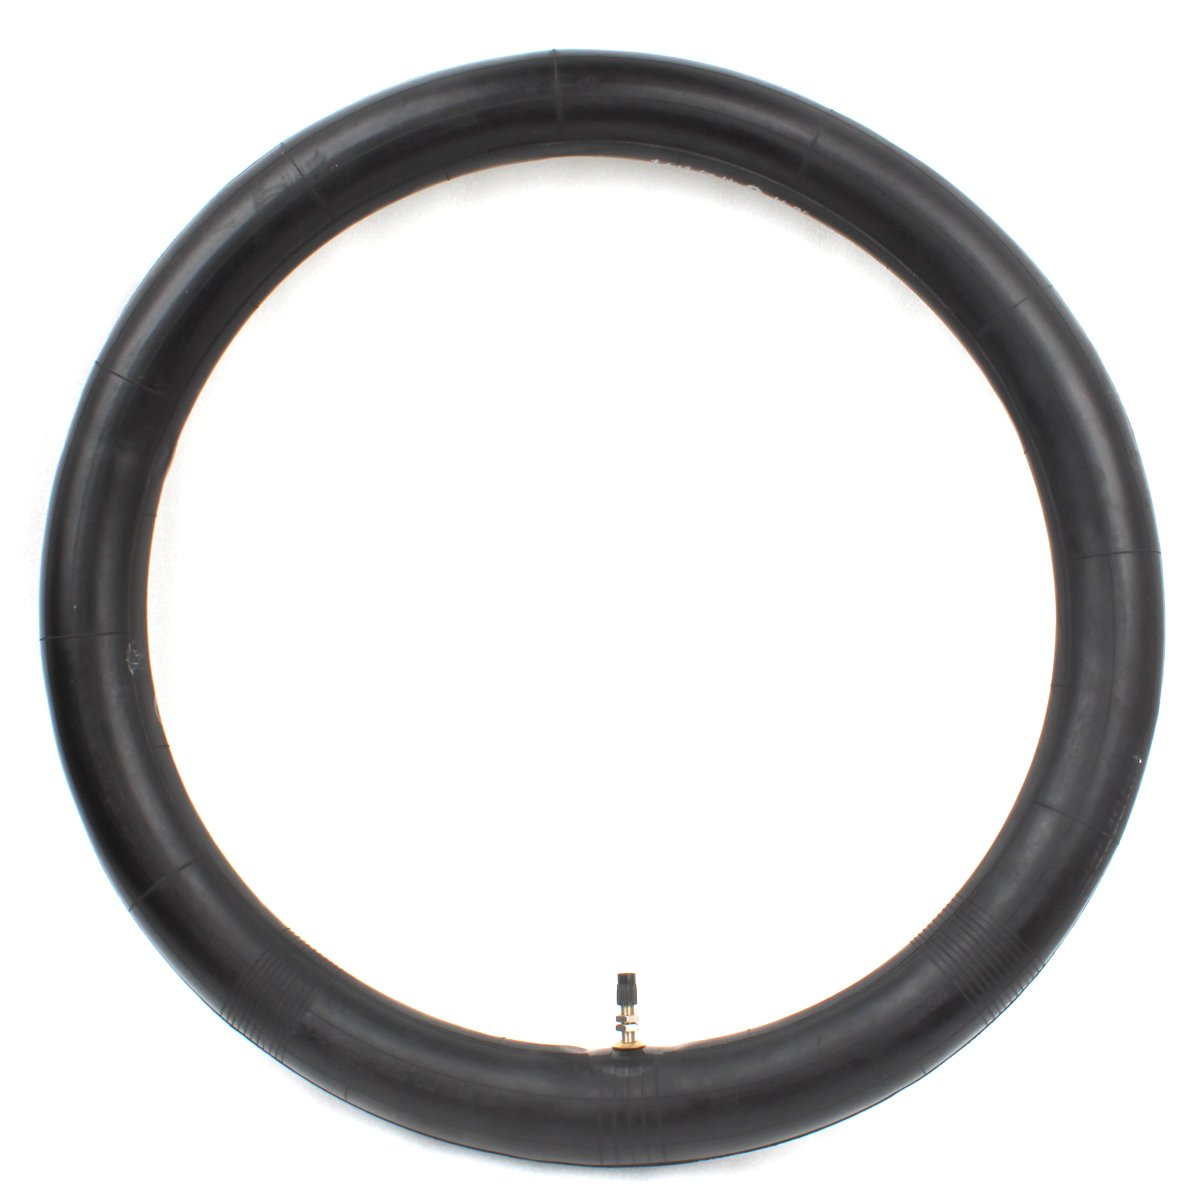 wingsmoto 2.50/2.75-18' Inch Inner Tube Straight Stem TR-4 Motorcycle Street Dirt Bike